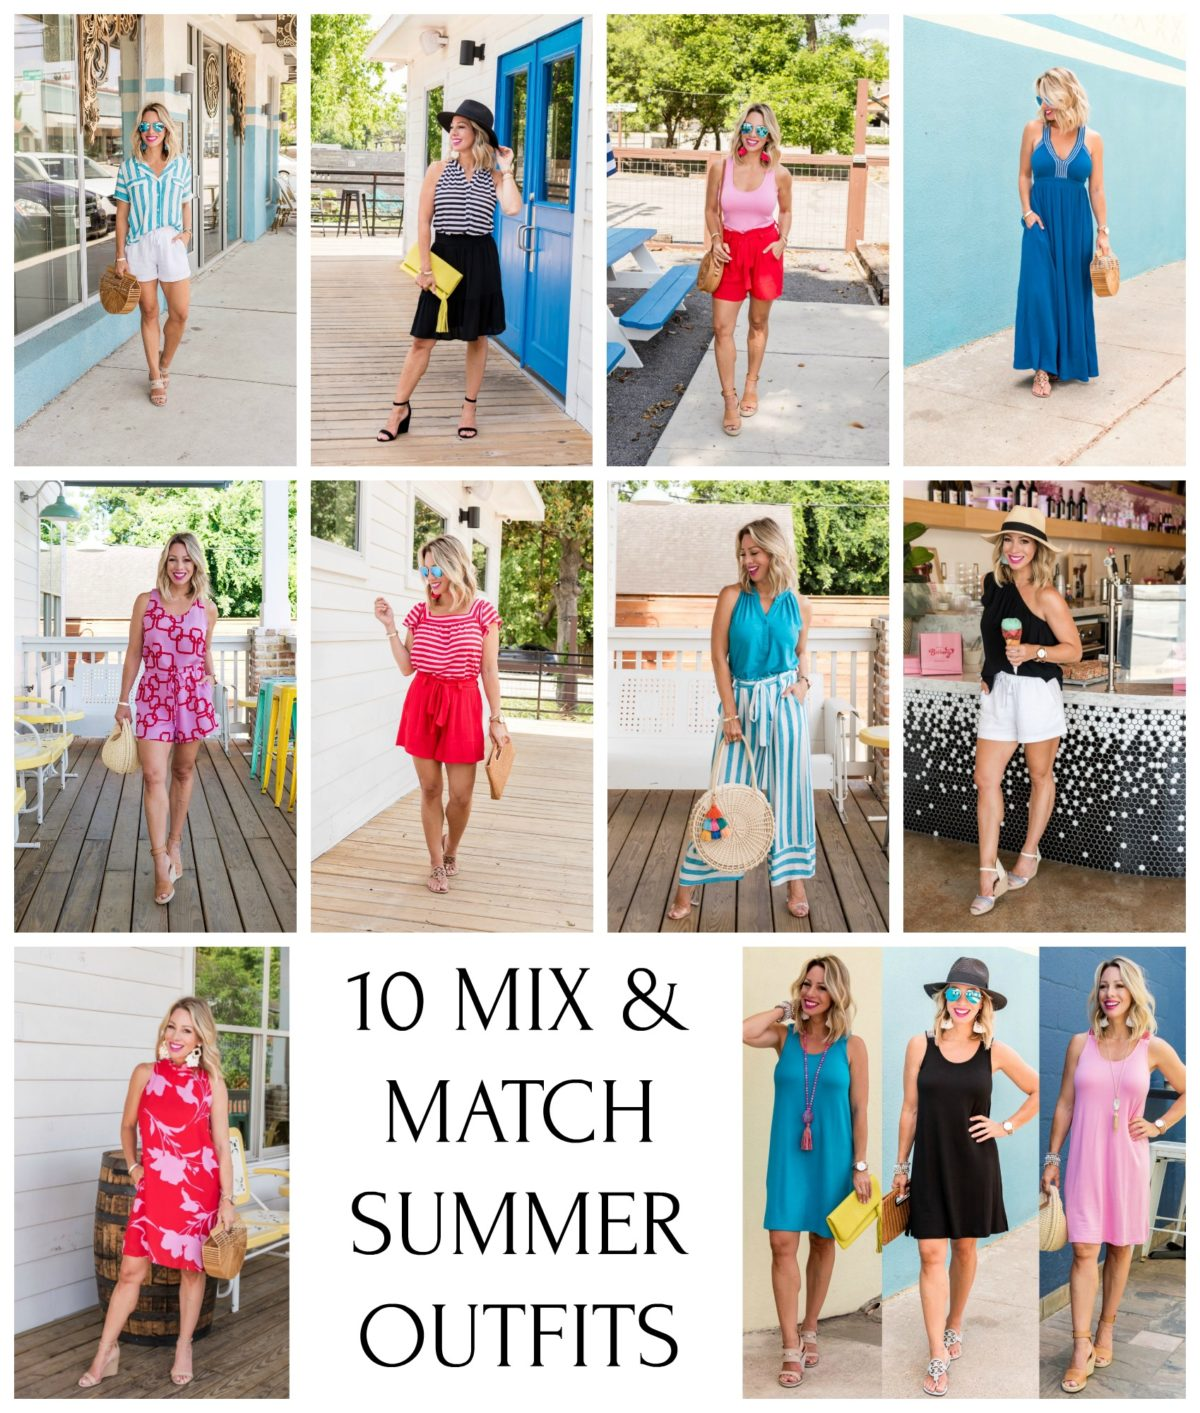 MIX & MATCH SUMMER OUTFITS